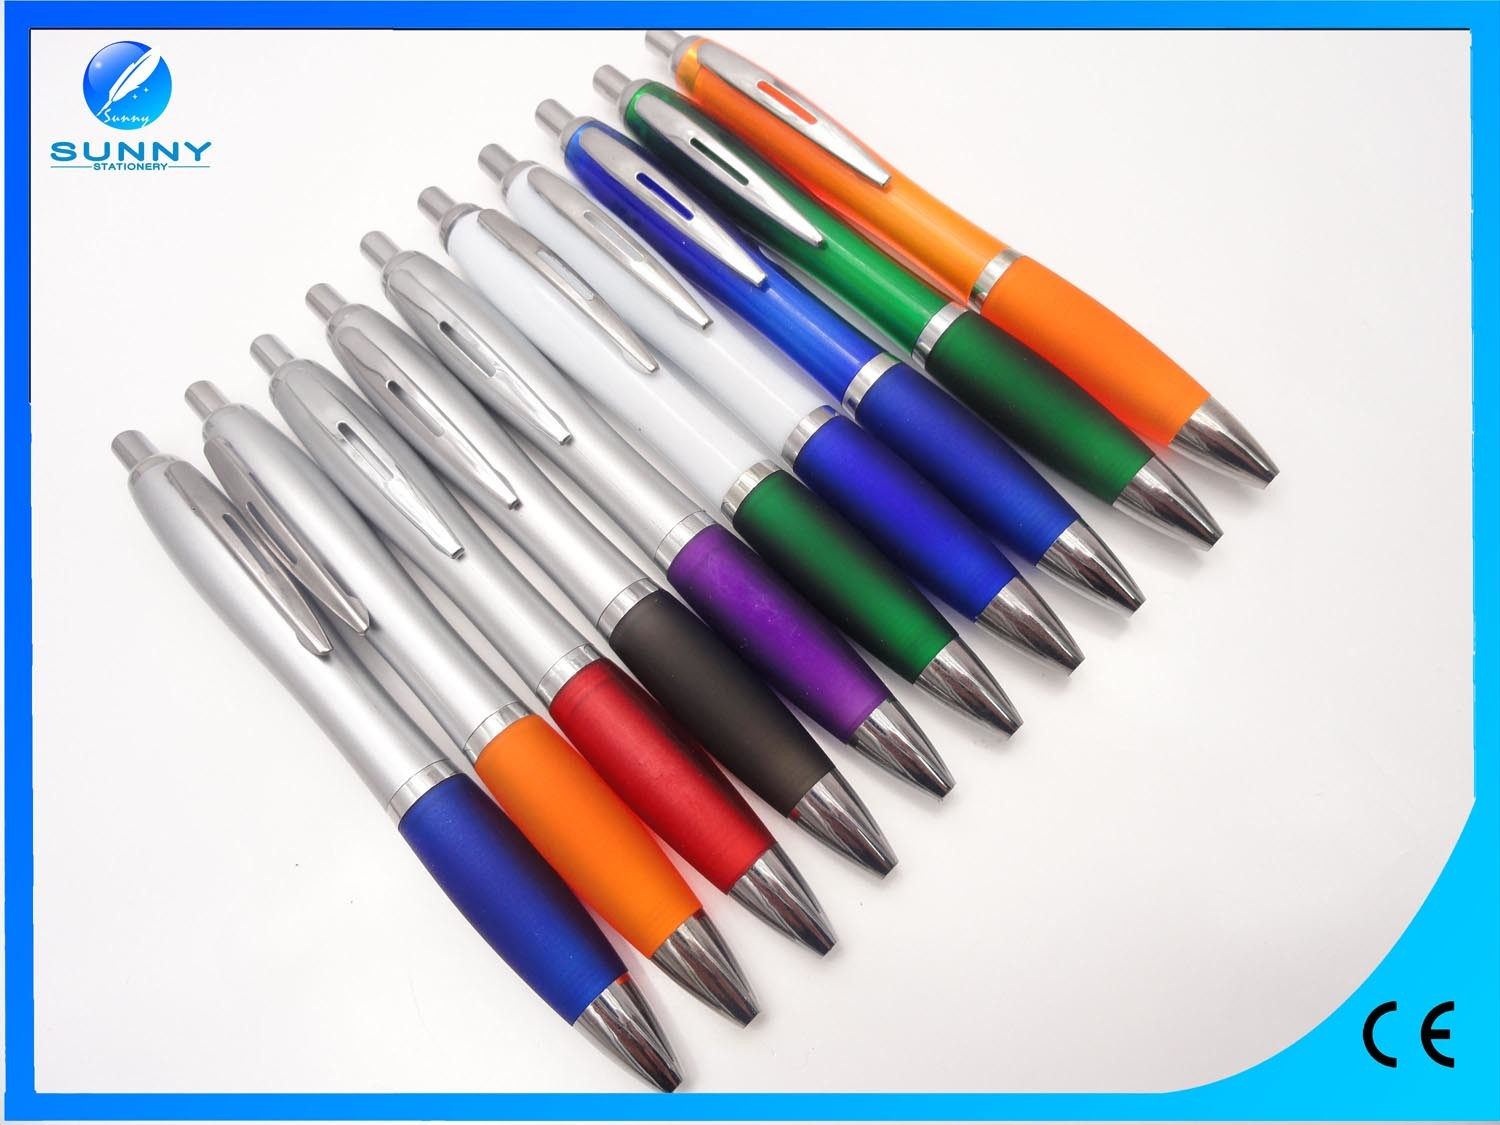 Hot Sale Promotional Gift Ball Pen for Students